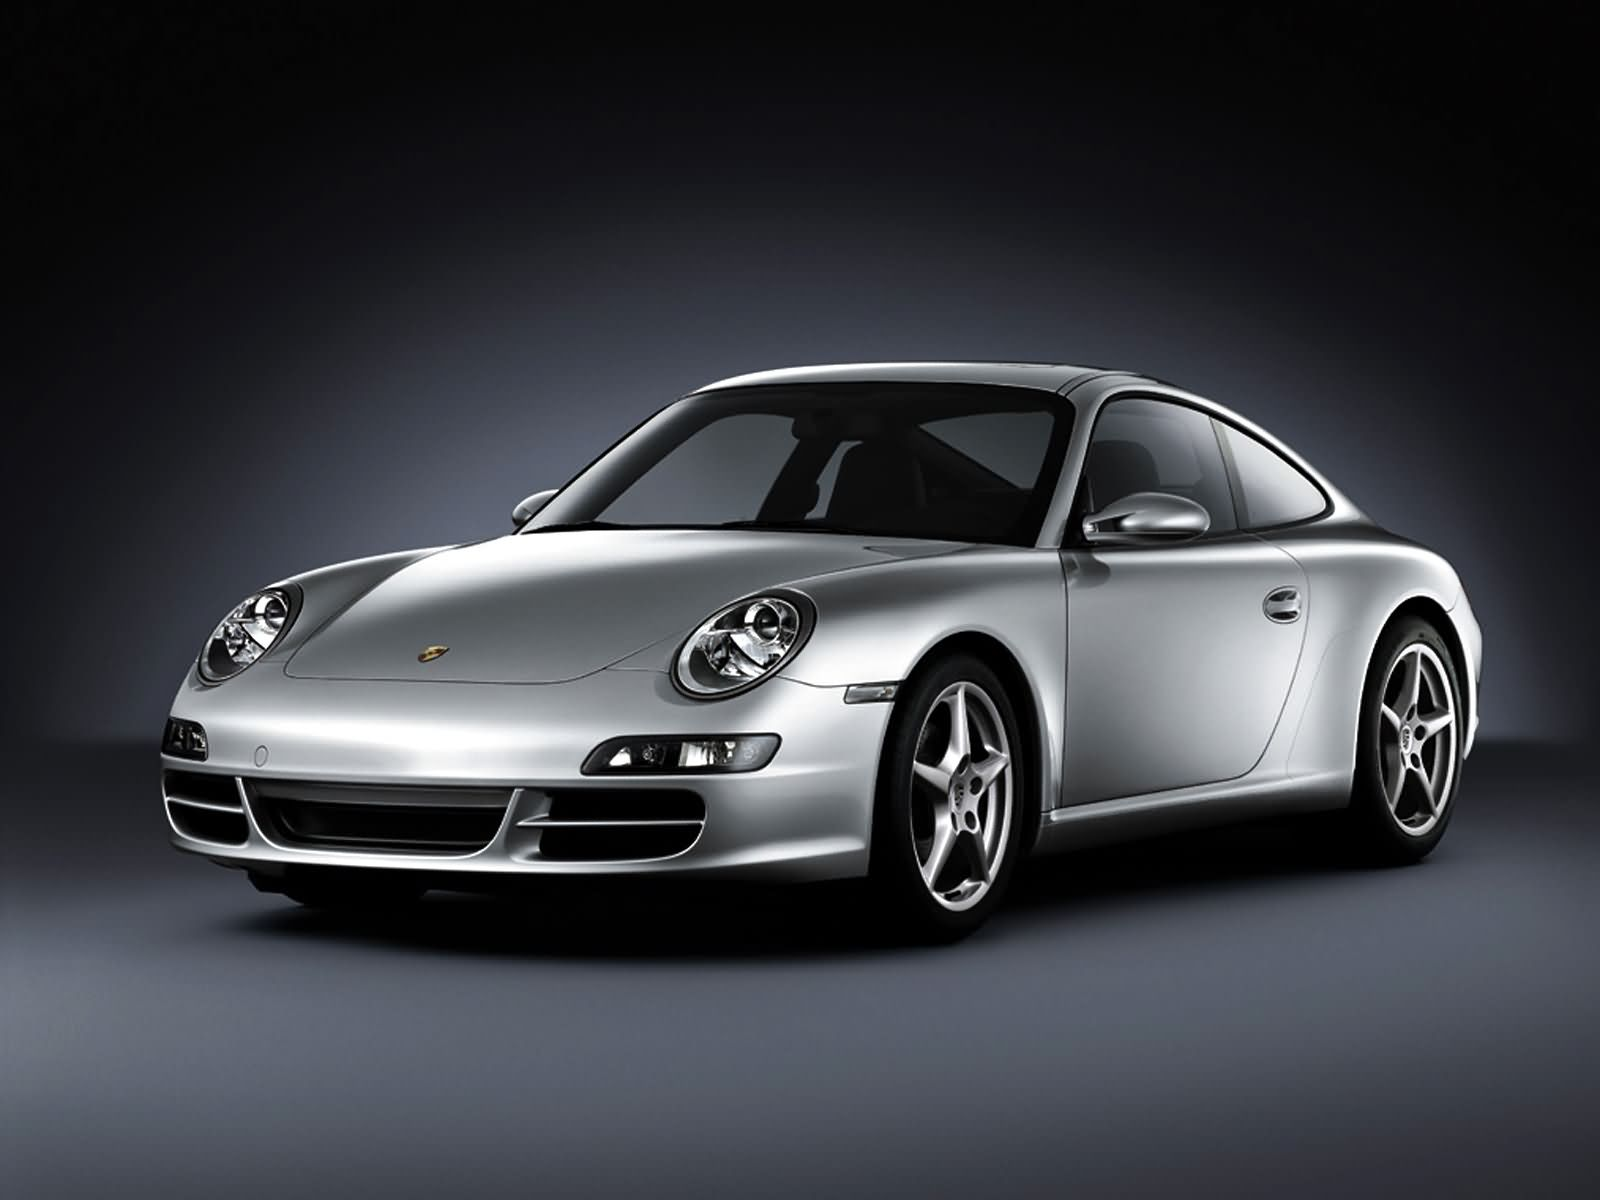 Porsche 997 911 Carrera Picture 18213 Porsche Photo